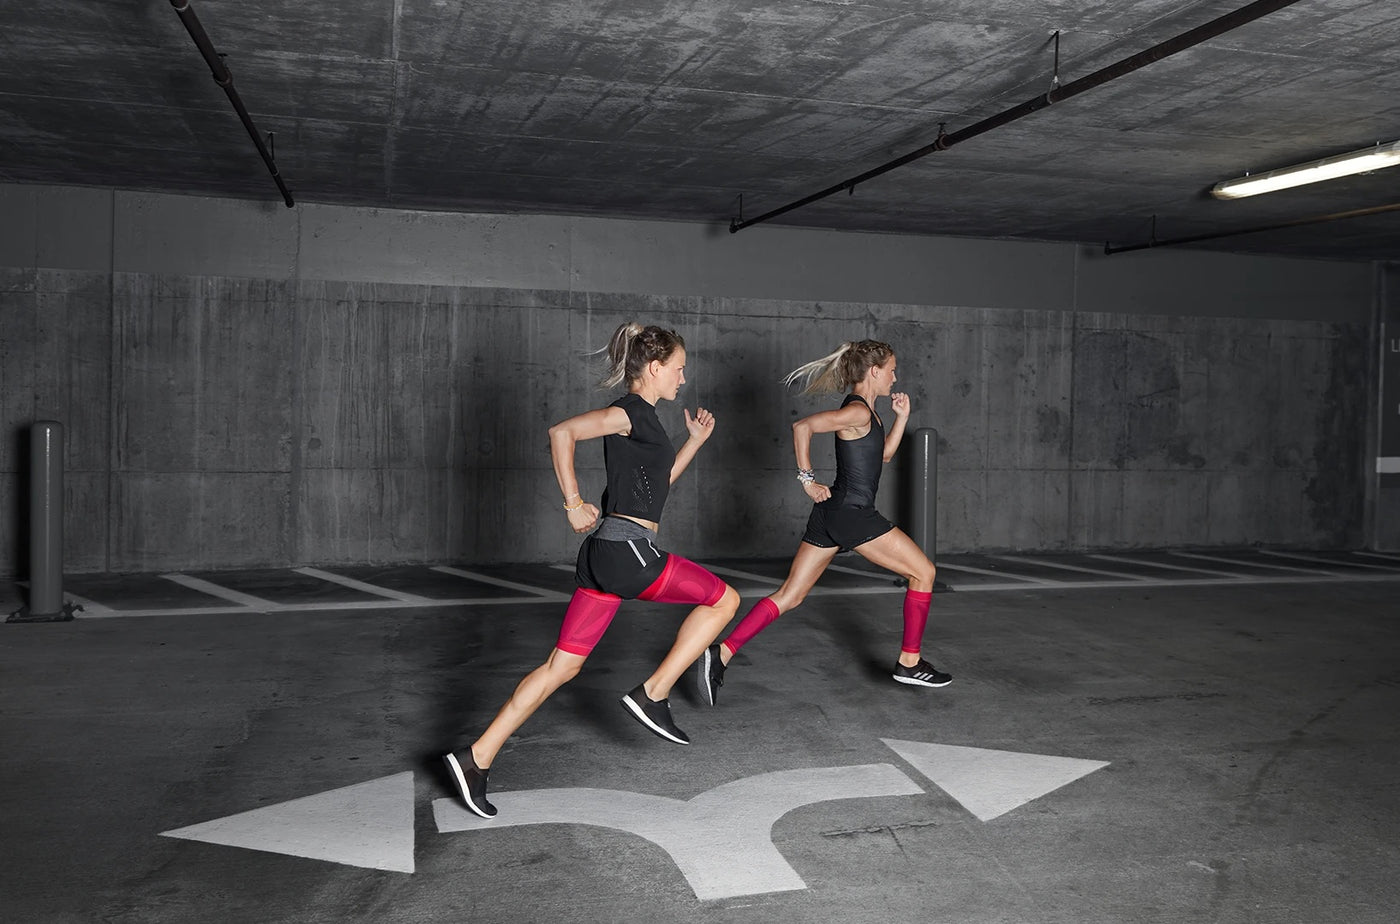 2 women running/jogging and wearing leg braces and is one of the sports compressions made by Bauerfeind.